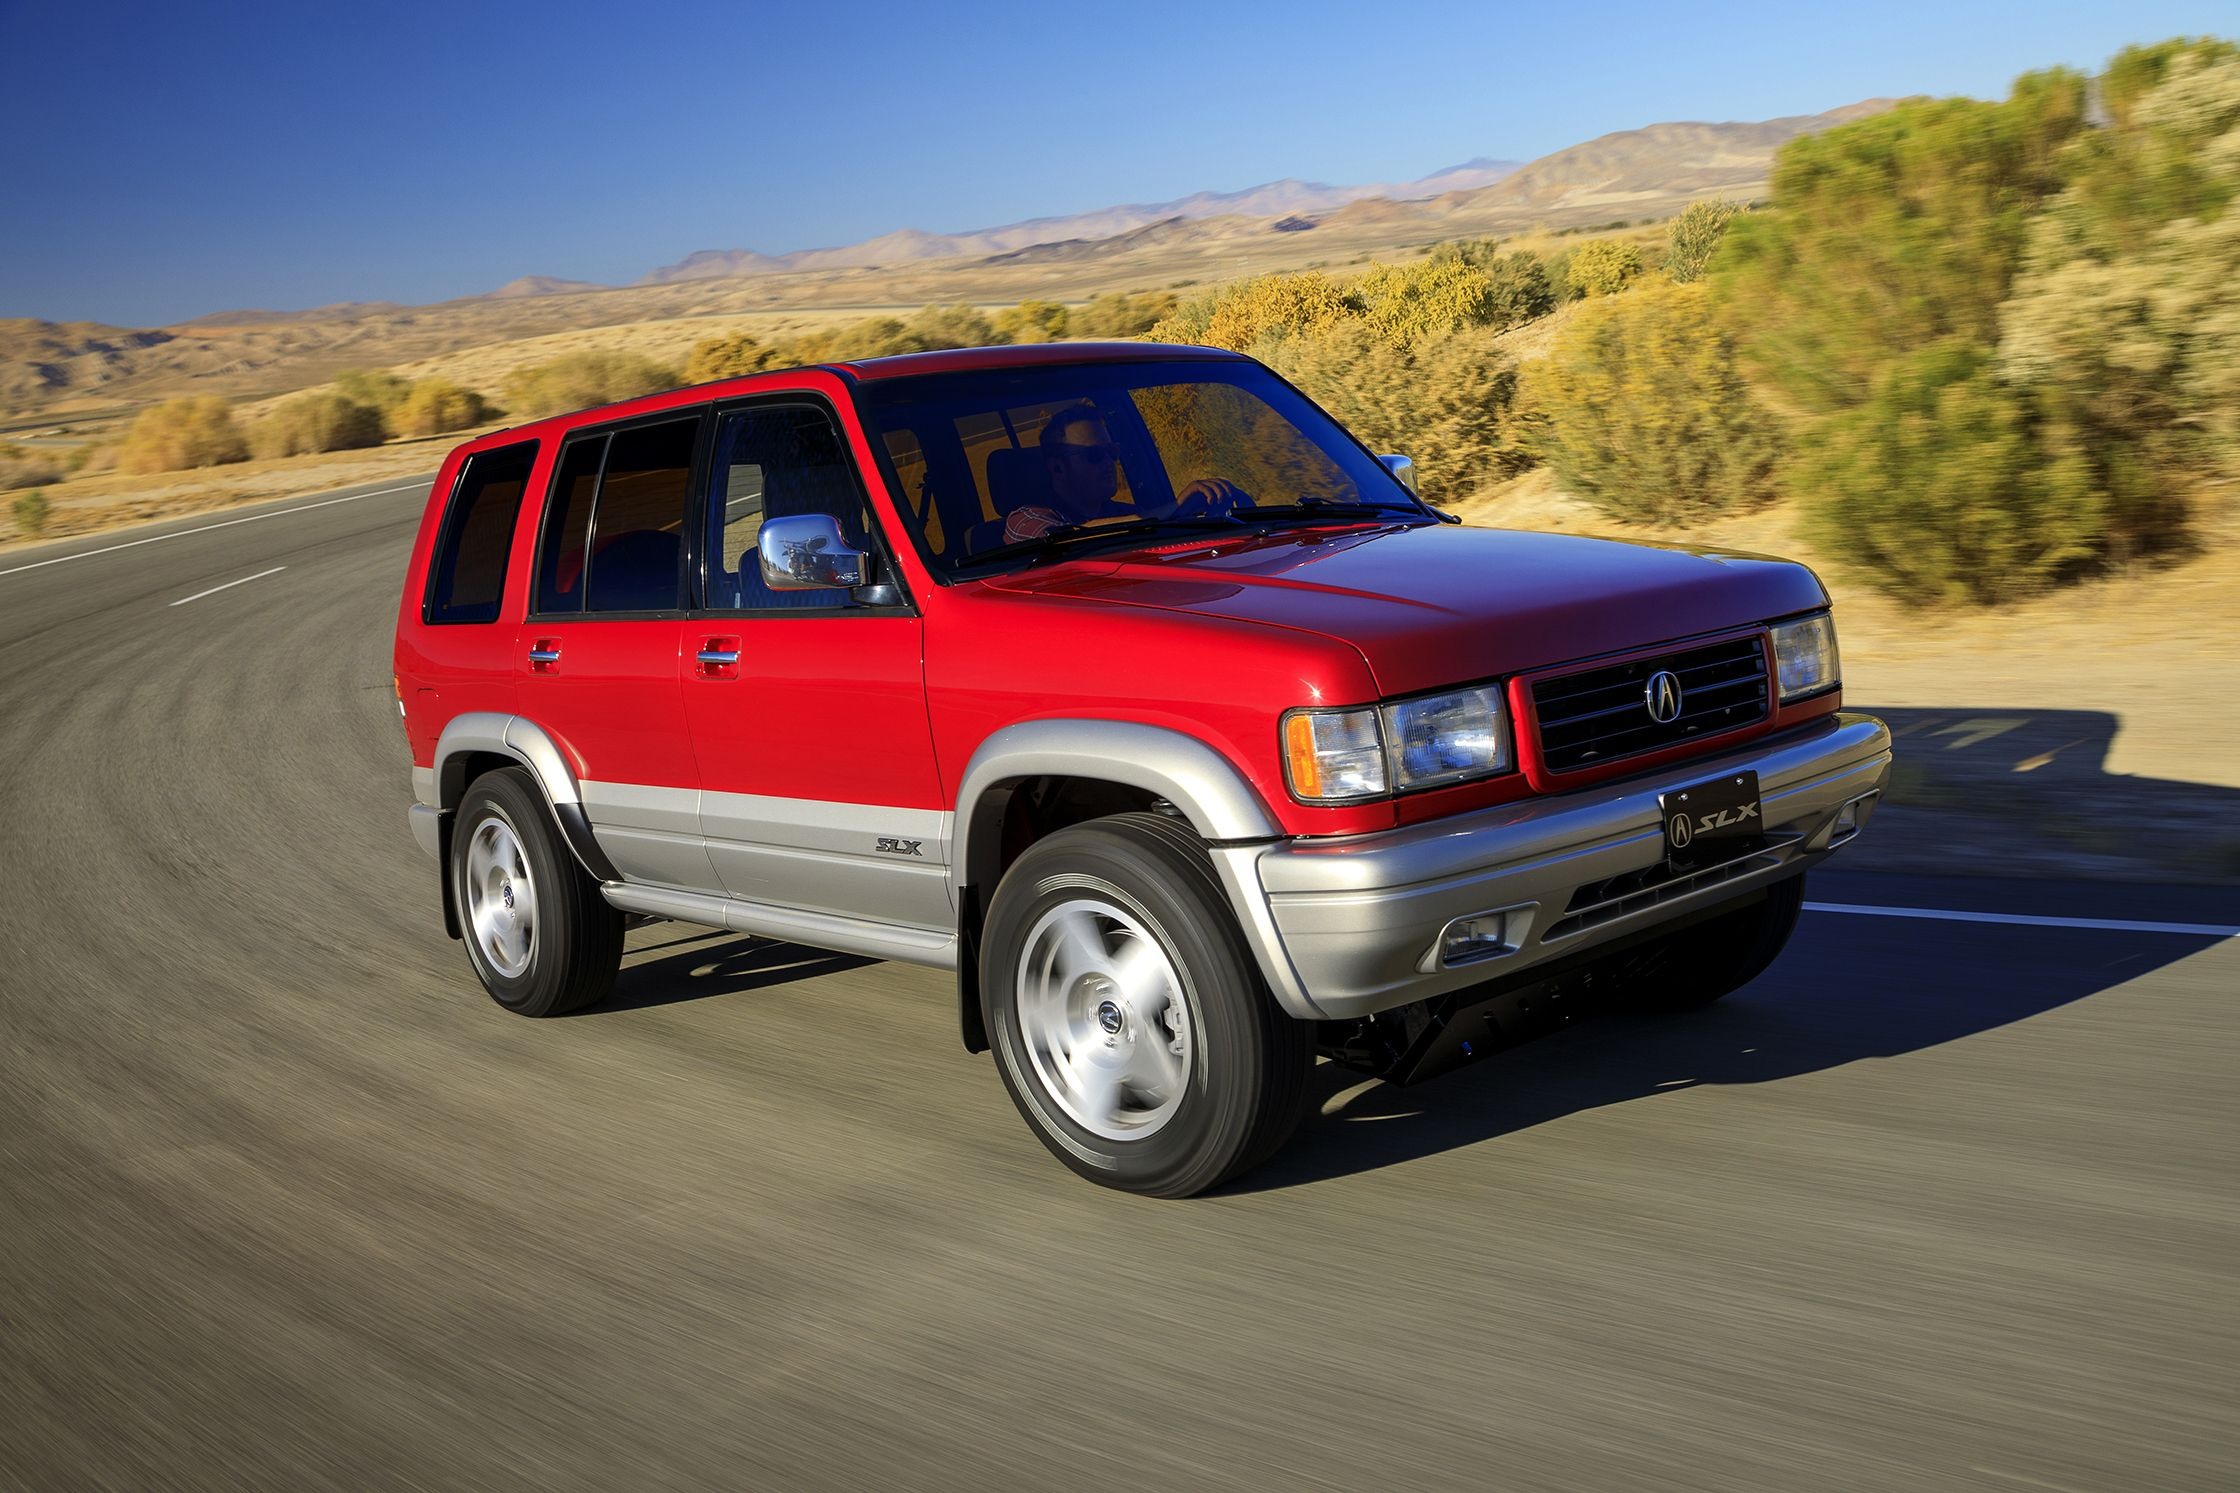 Acura Gave This 1997 SLX a Modern AWD System and a 350-HP VTEC Engine